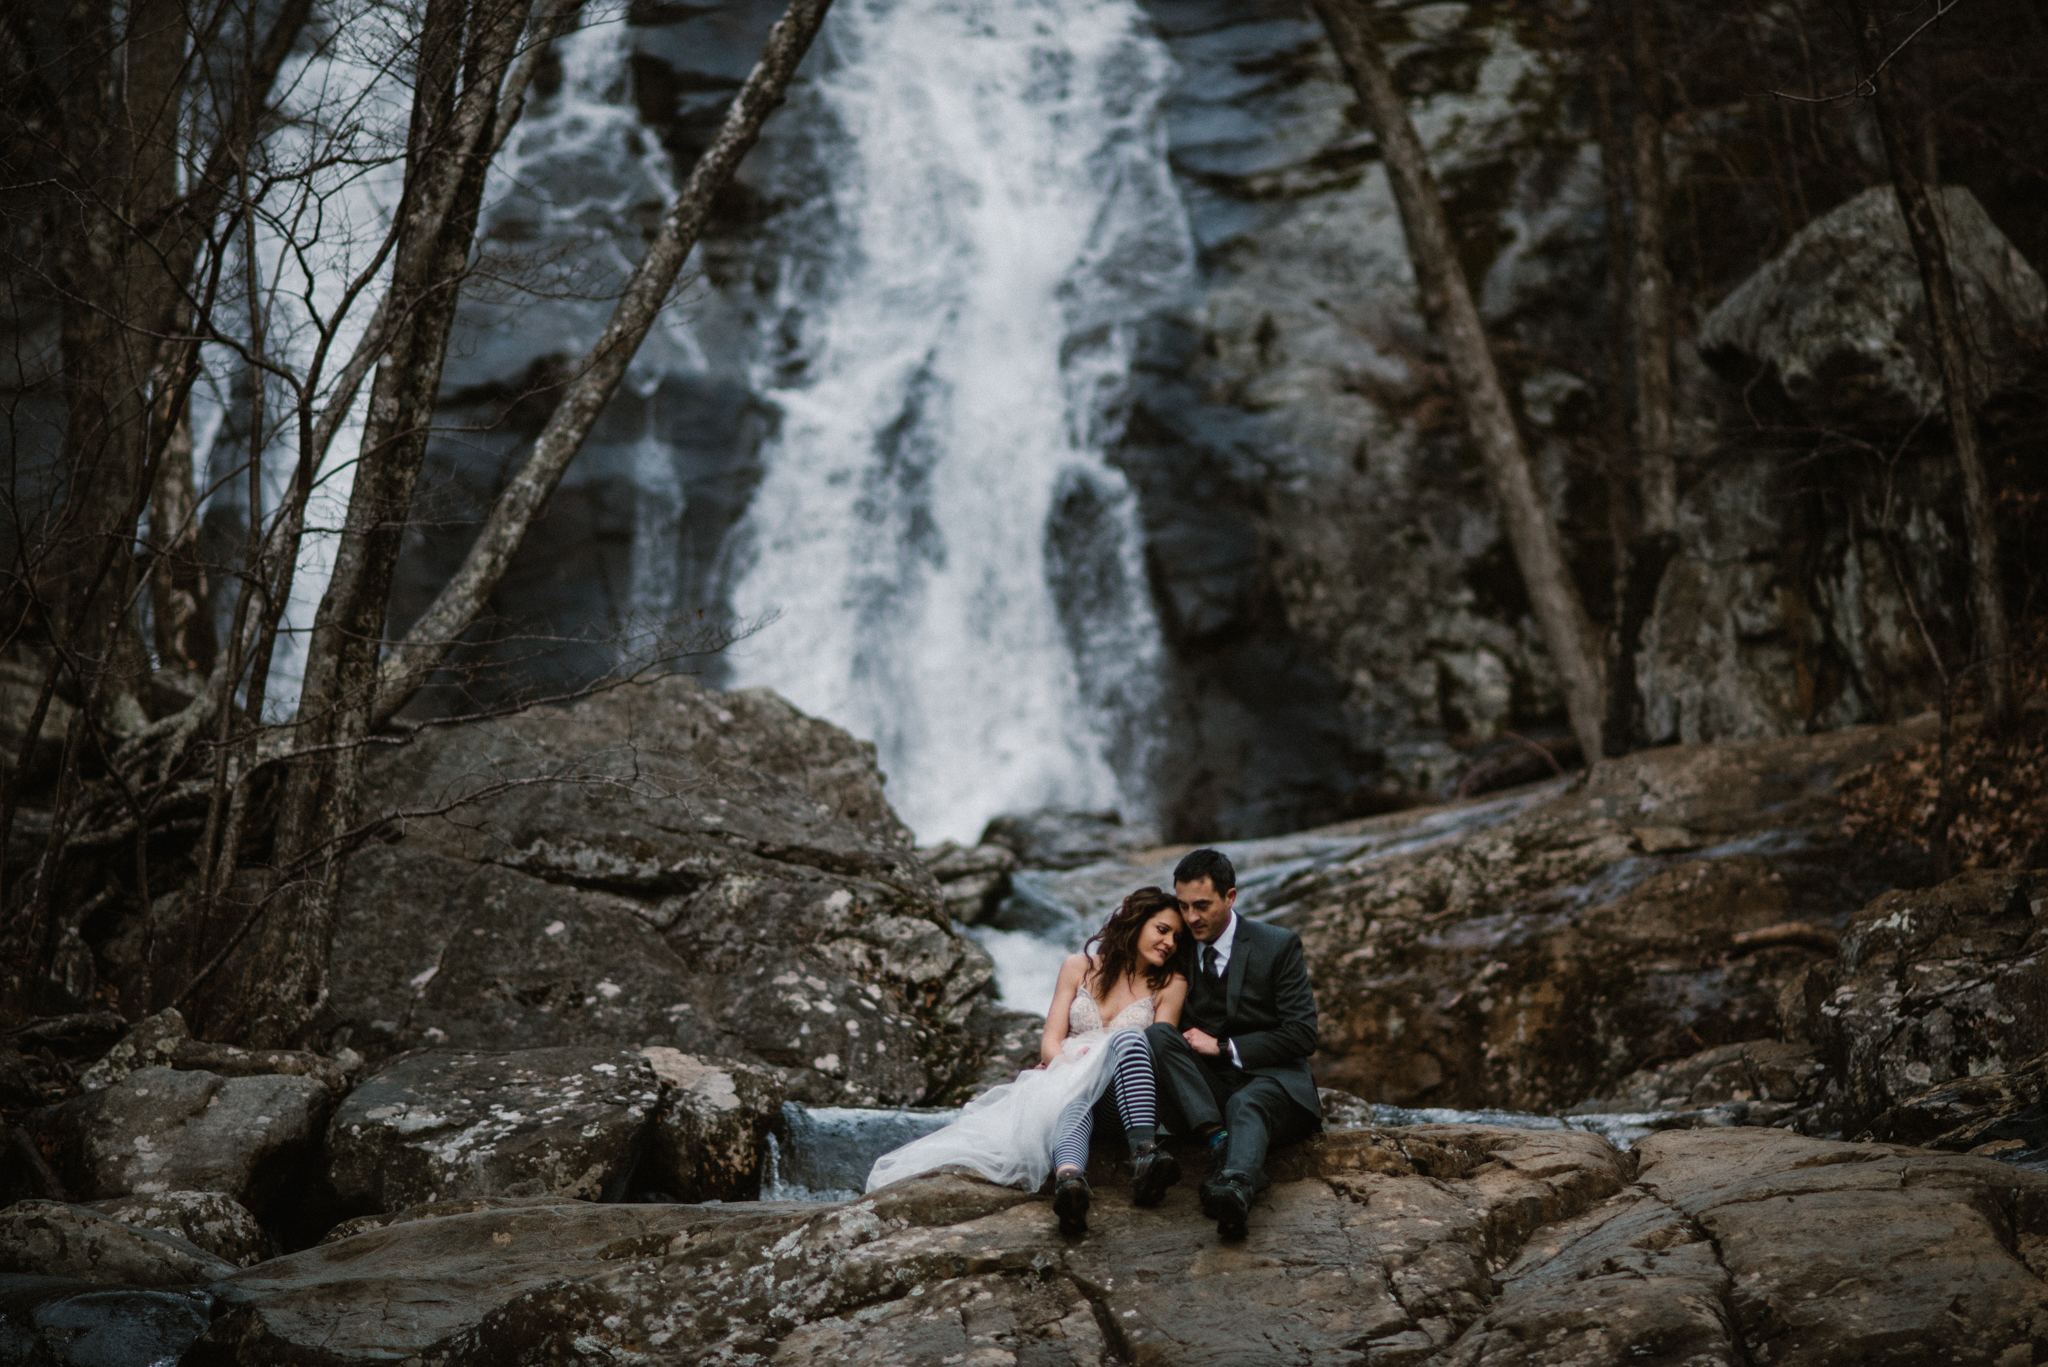 Stephanie and Steve - Shenandoah National Park Elopement - Sunrise Hiking Elopement - Adventurous Elopement - Virginia Elopement Photographer - Shenandoah national Park Wedding Photographer - White Sails Creative_13.jpg